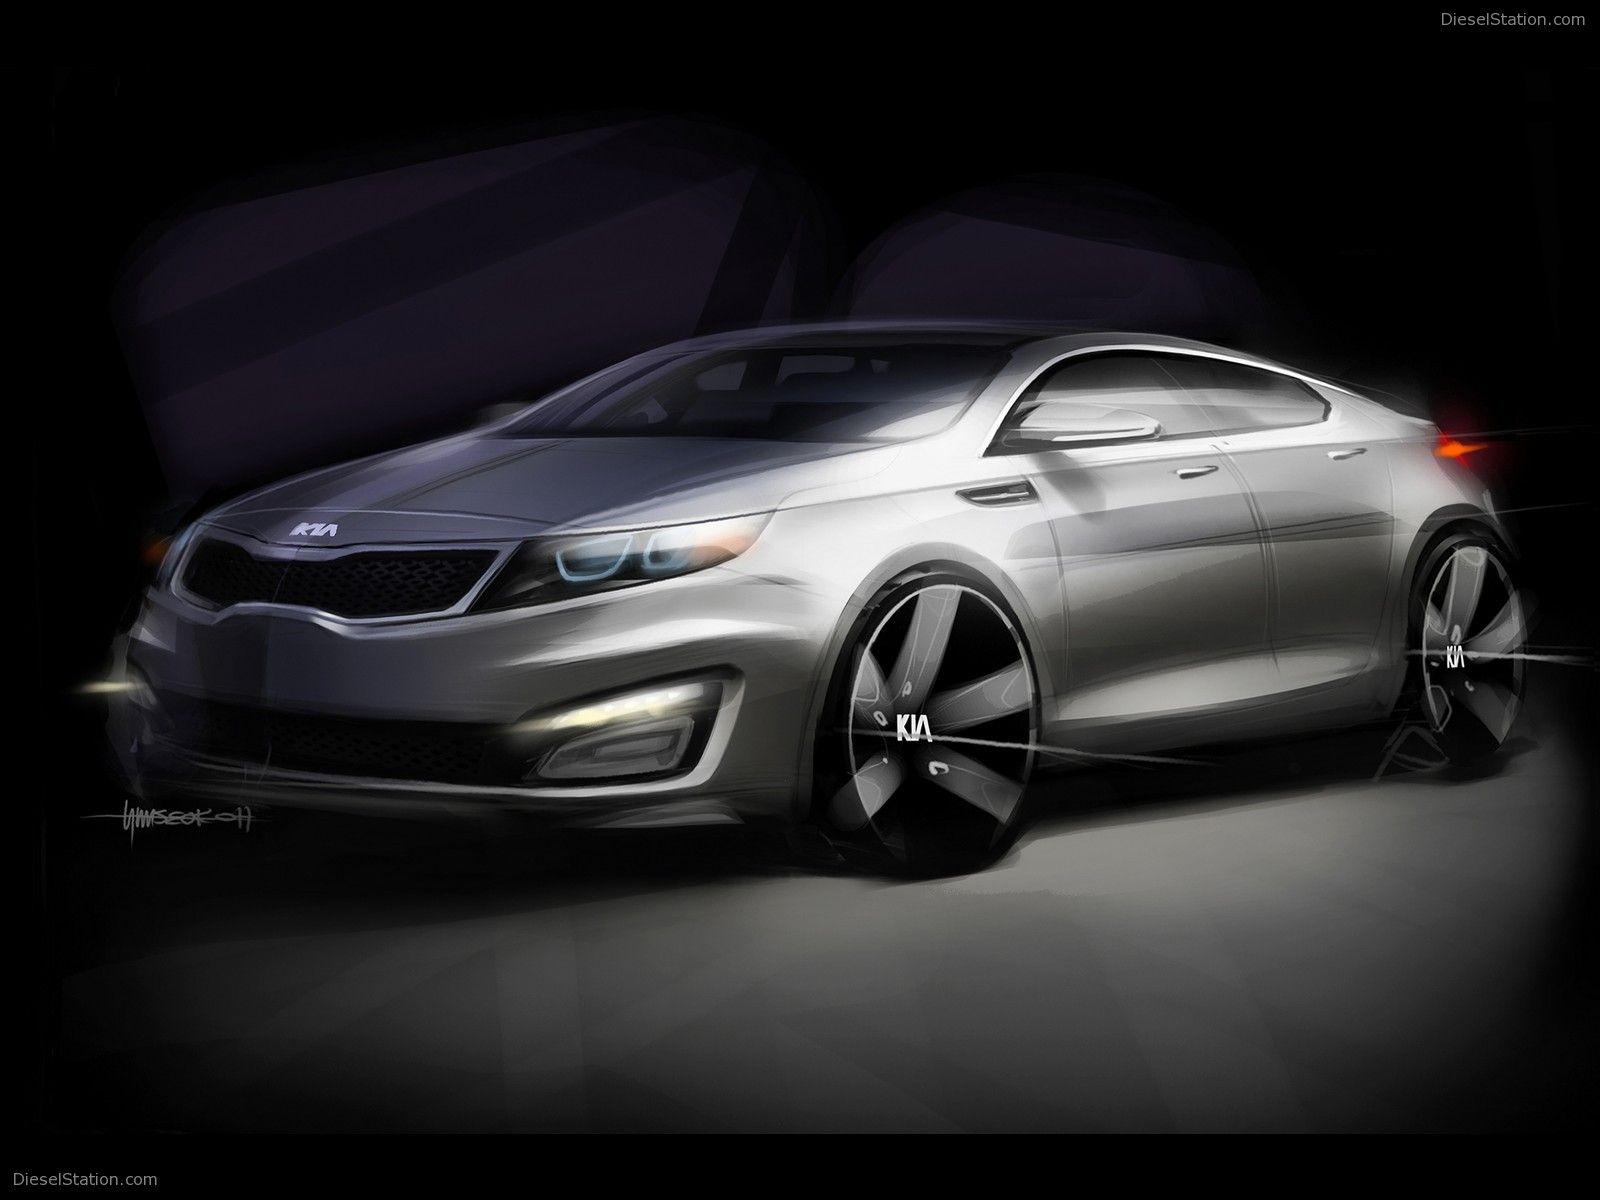 Kia Optima 2011 Exotic Car Wallpapers #02 of 12 : Diesel Station